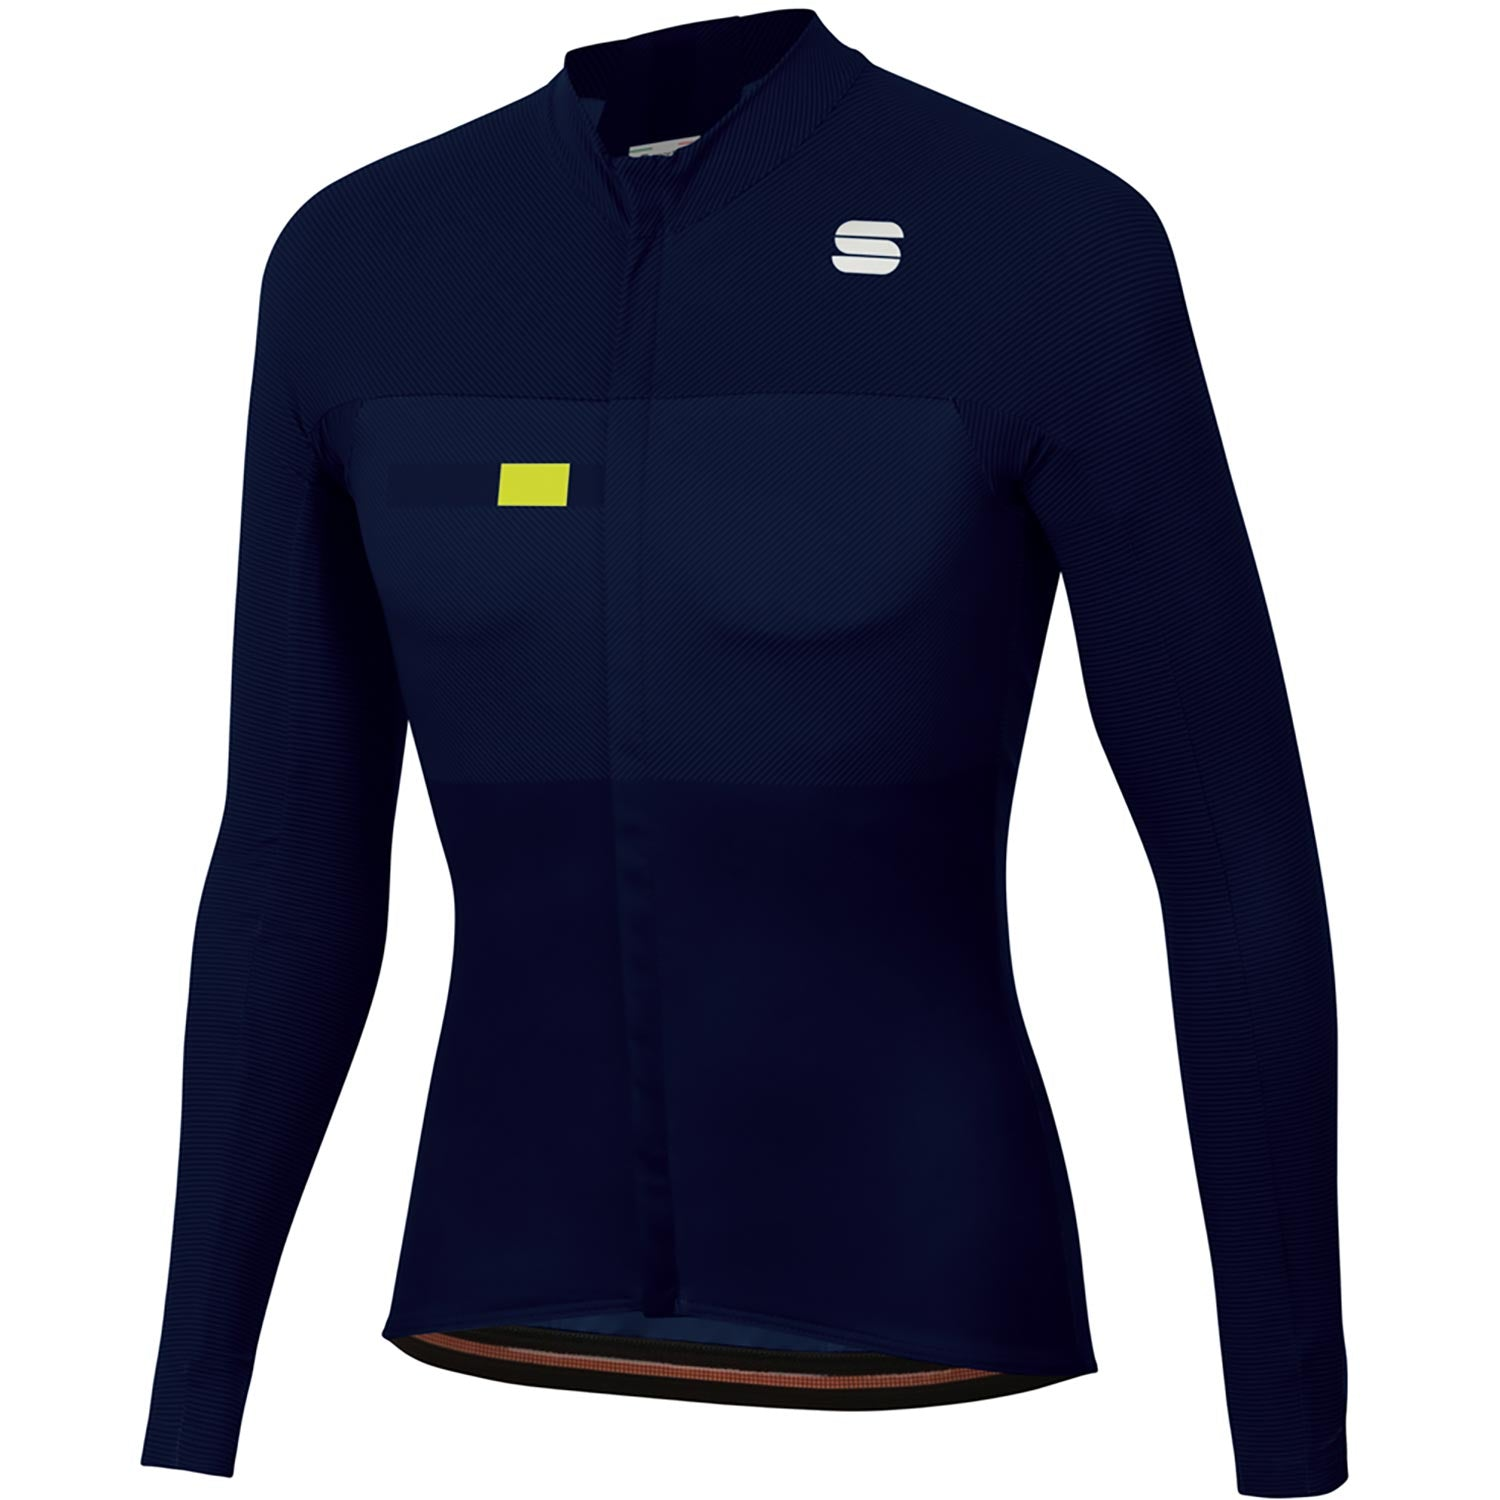 Sportful-Sportful BodyFit Pro Thermal Jersey-Blue/Yellow Fluo-S-SF205020132-saddleback-elite-performance-cycling